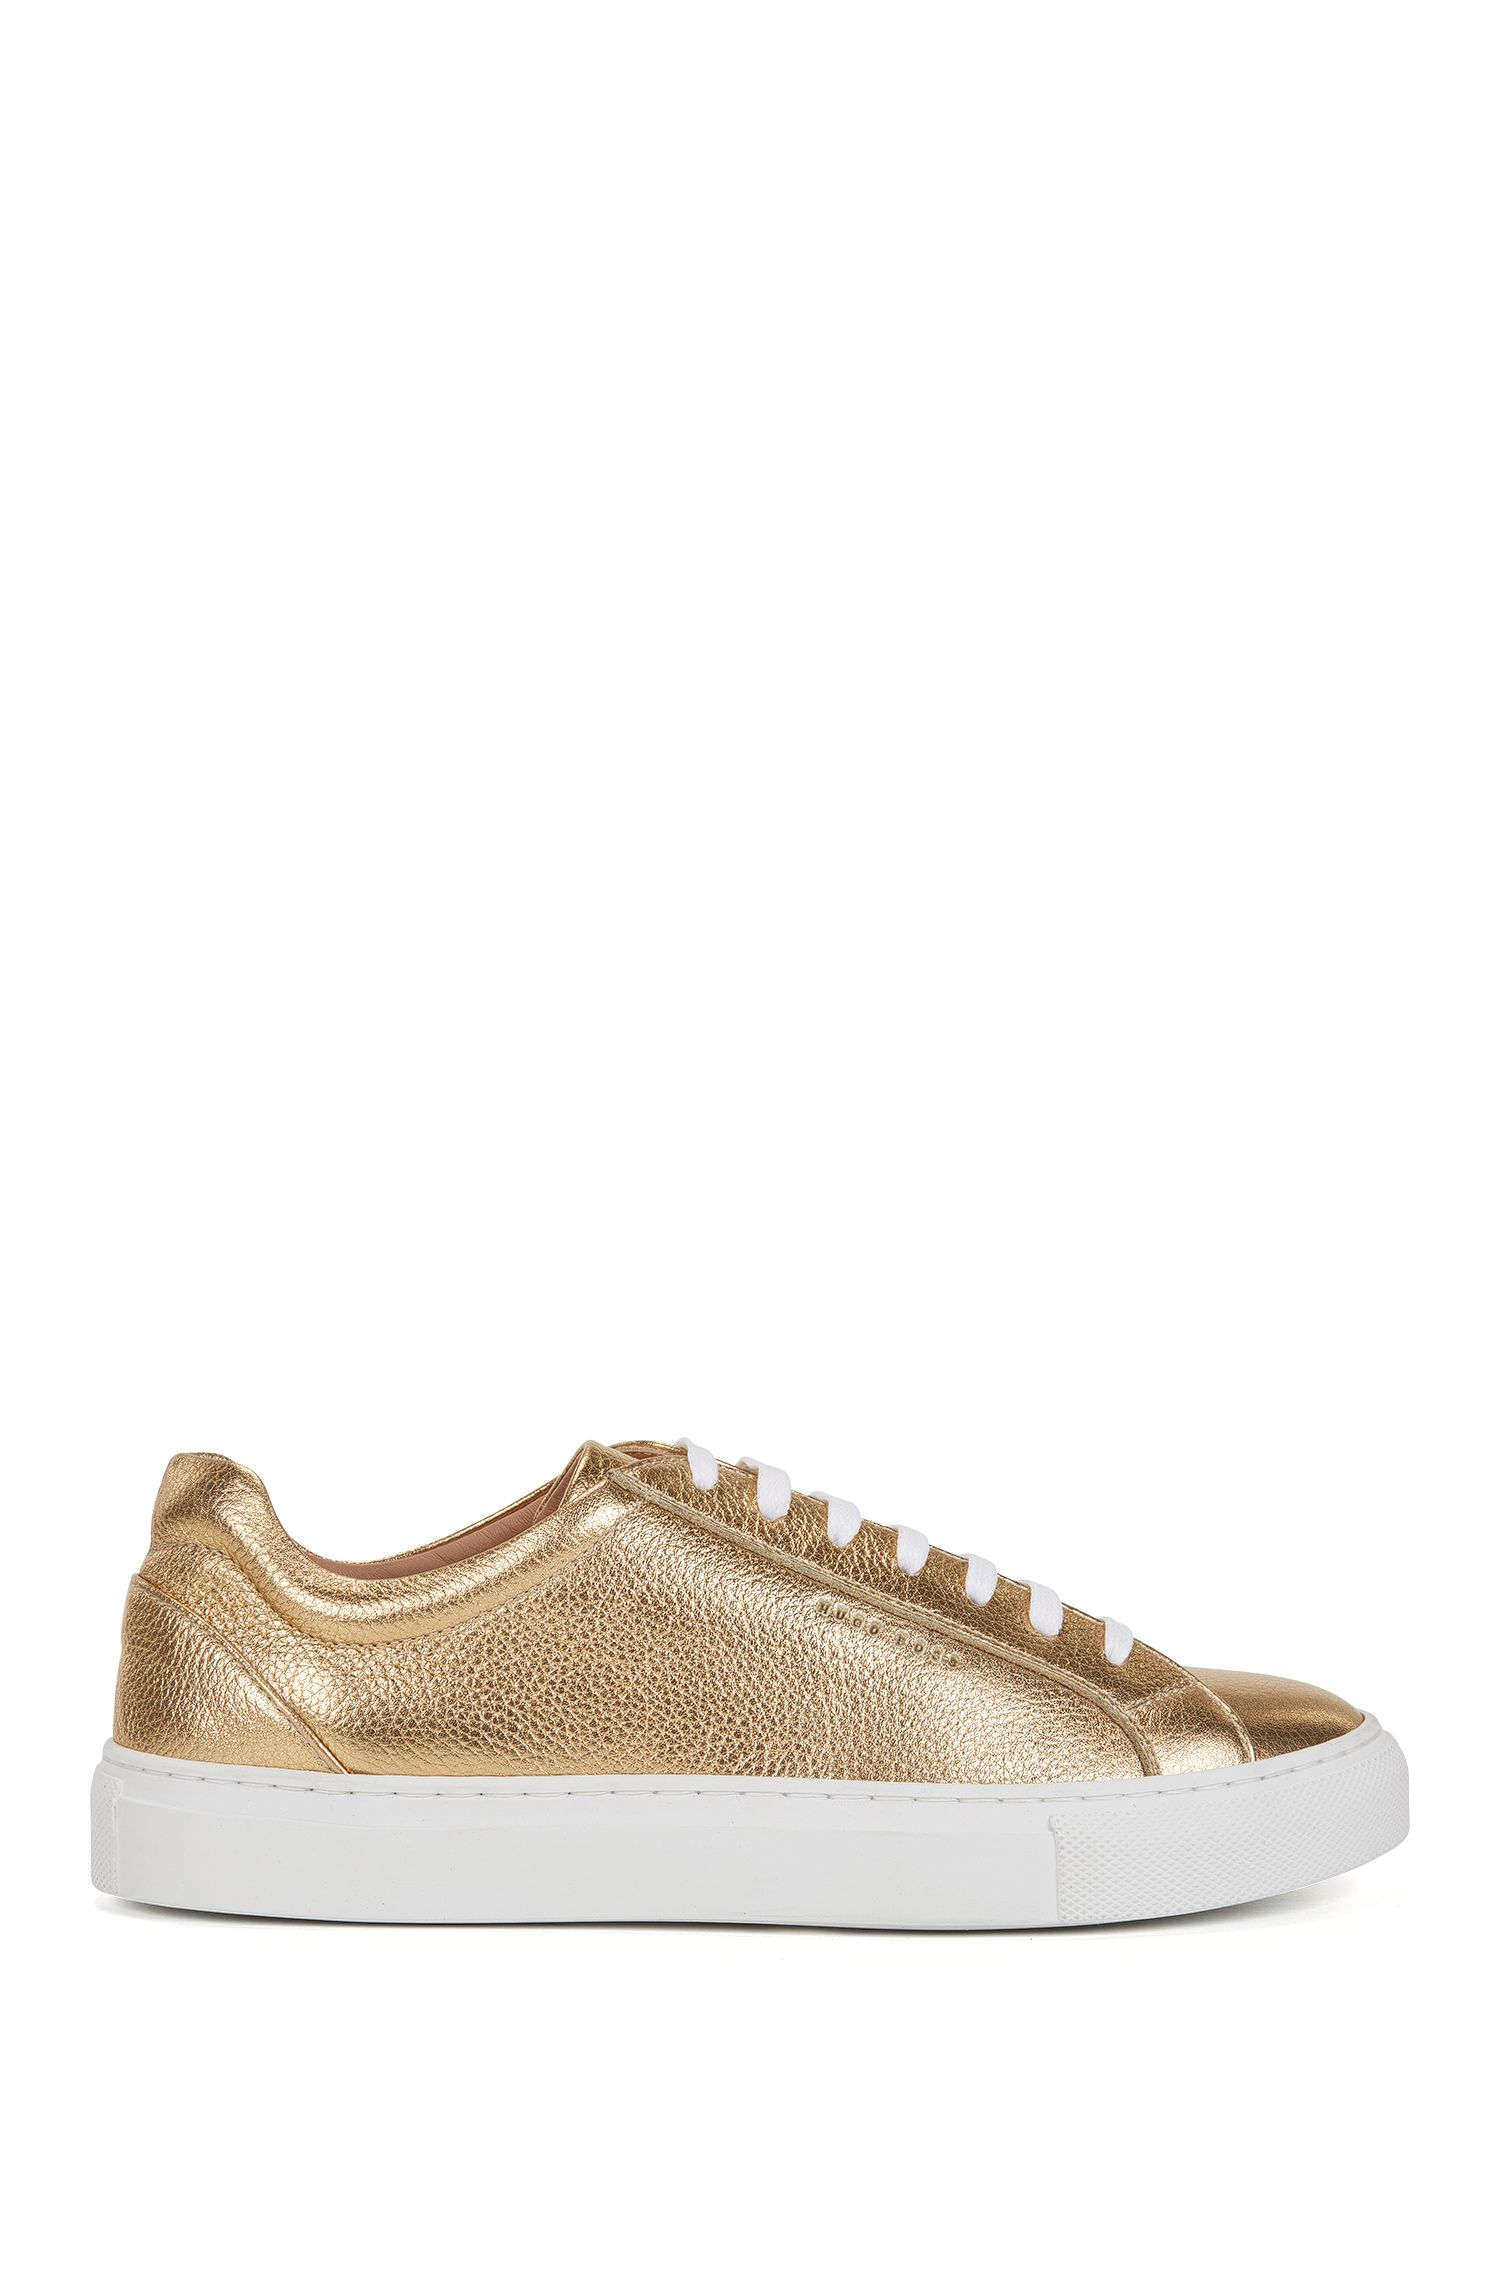 Leder-Sneakers mit Metallic-Optik